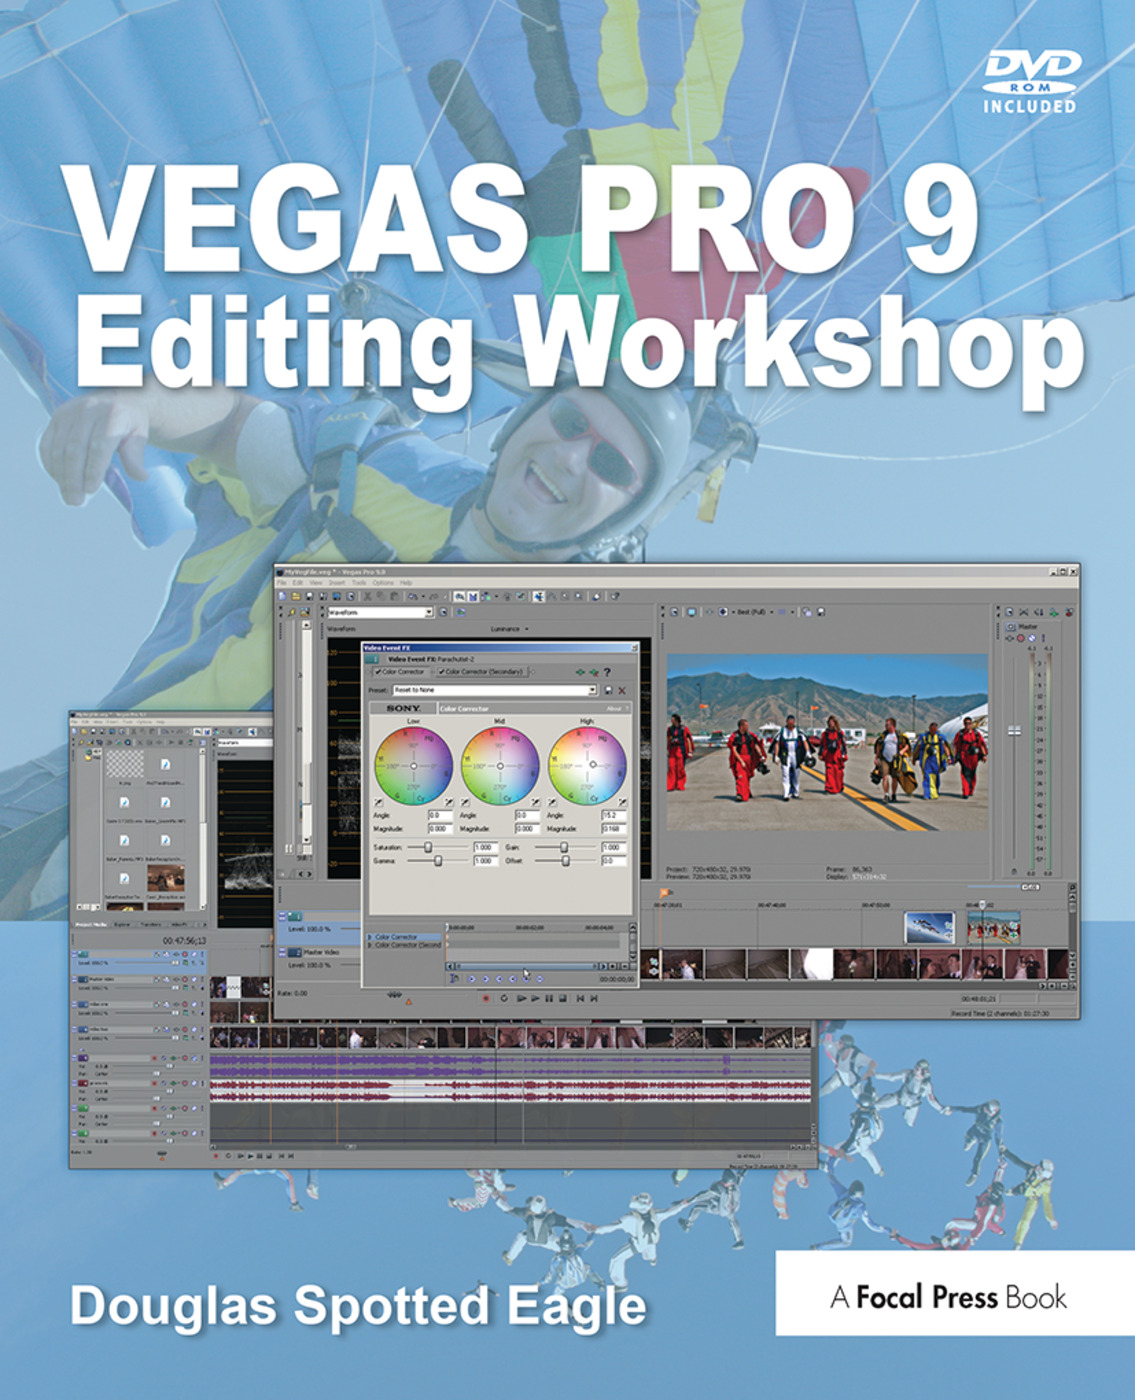 Vegas Pro 9 Editing Workshop book cover